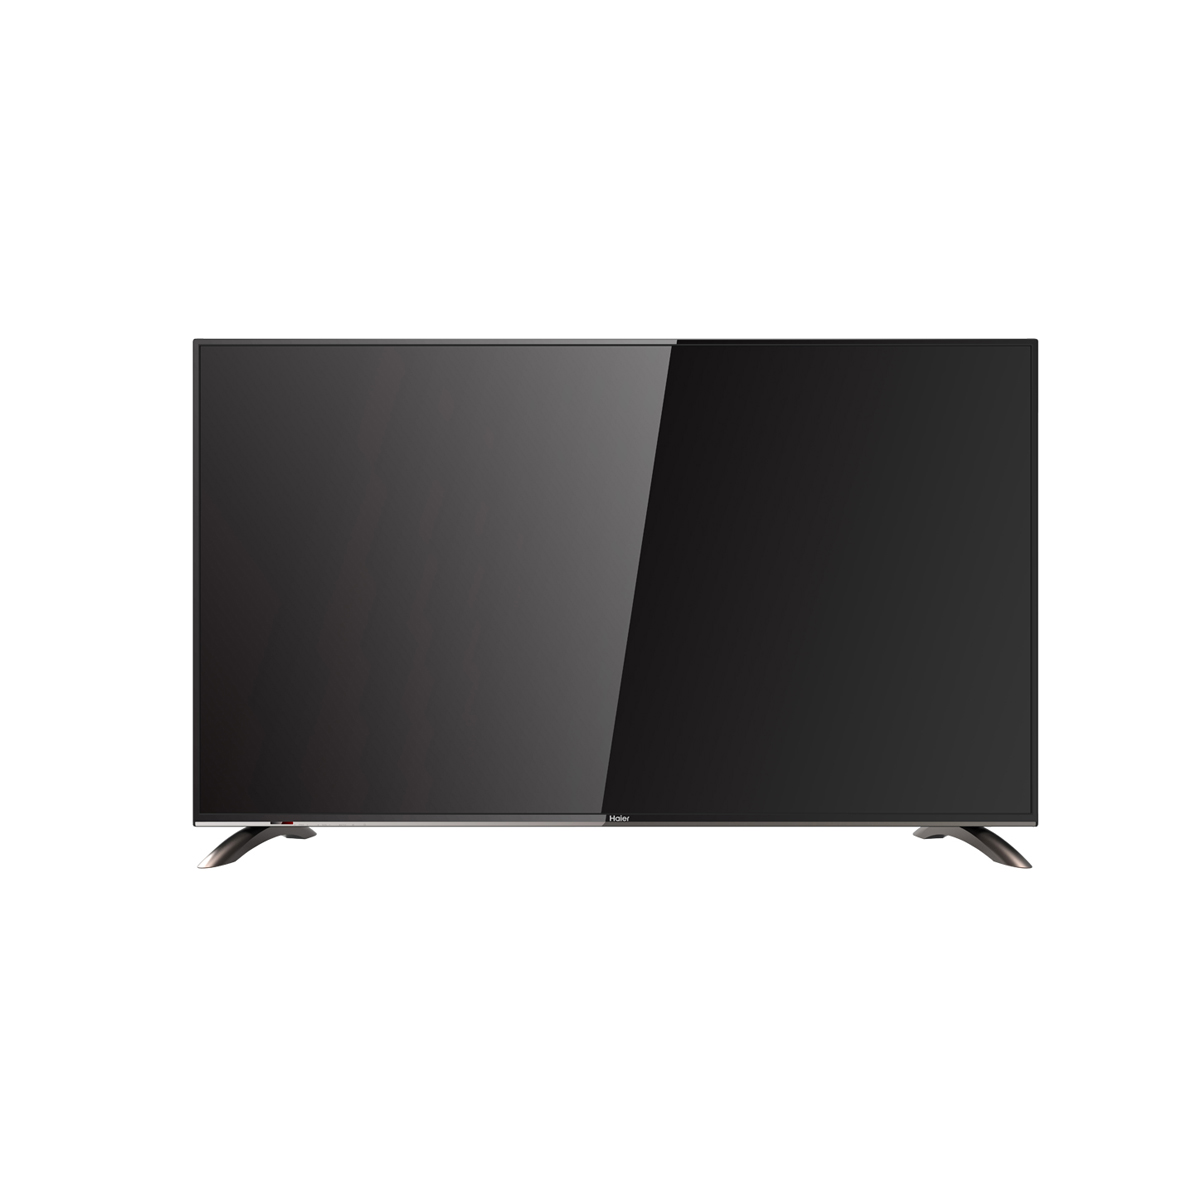 haier 32 32b9000 hd ready led tv price in pakistan. Black Bedroom Furniture Sets. Home Design Ideas